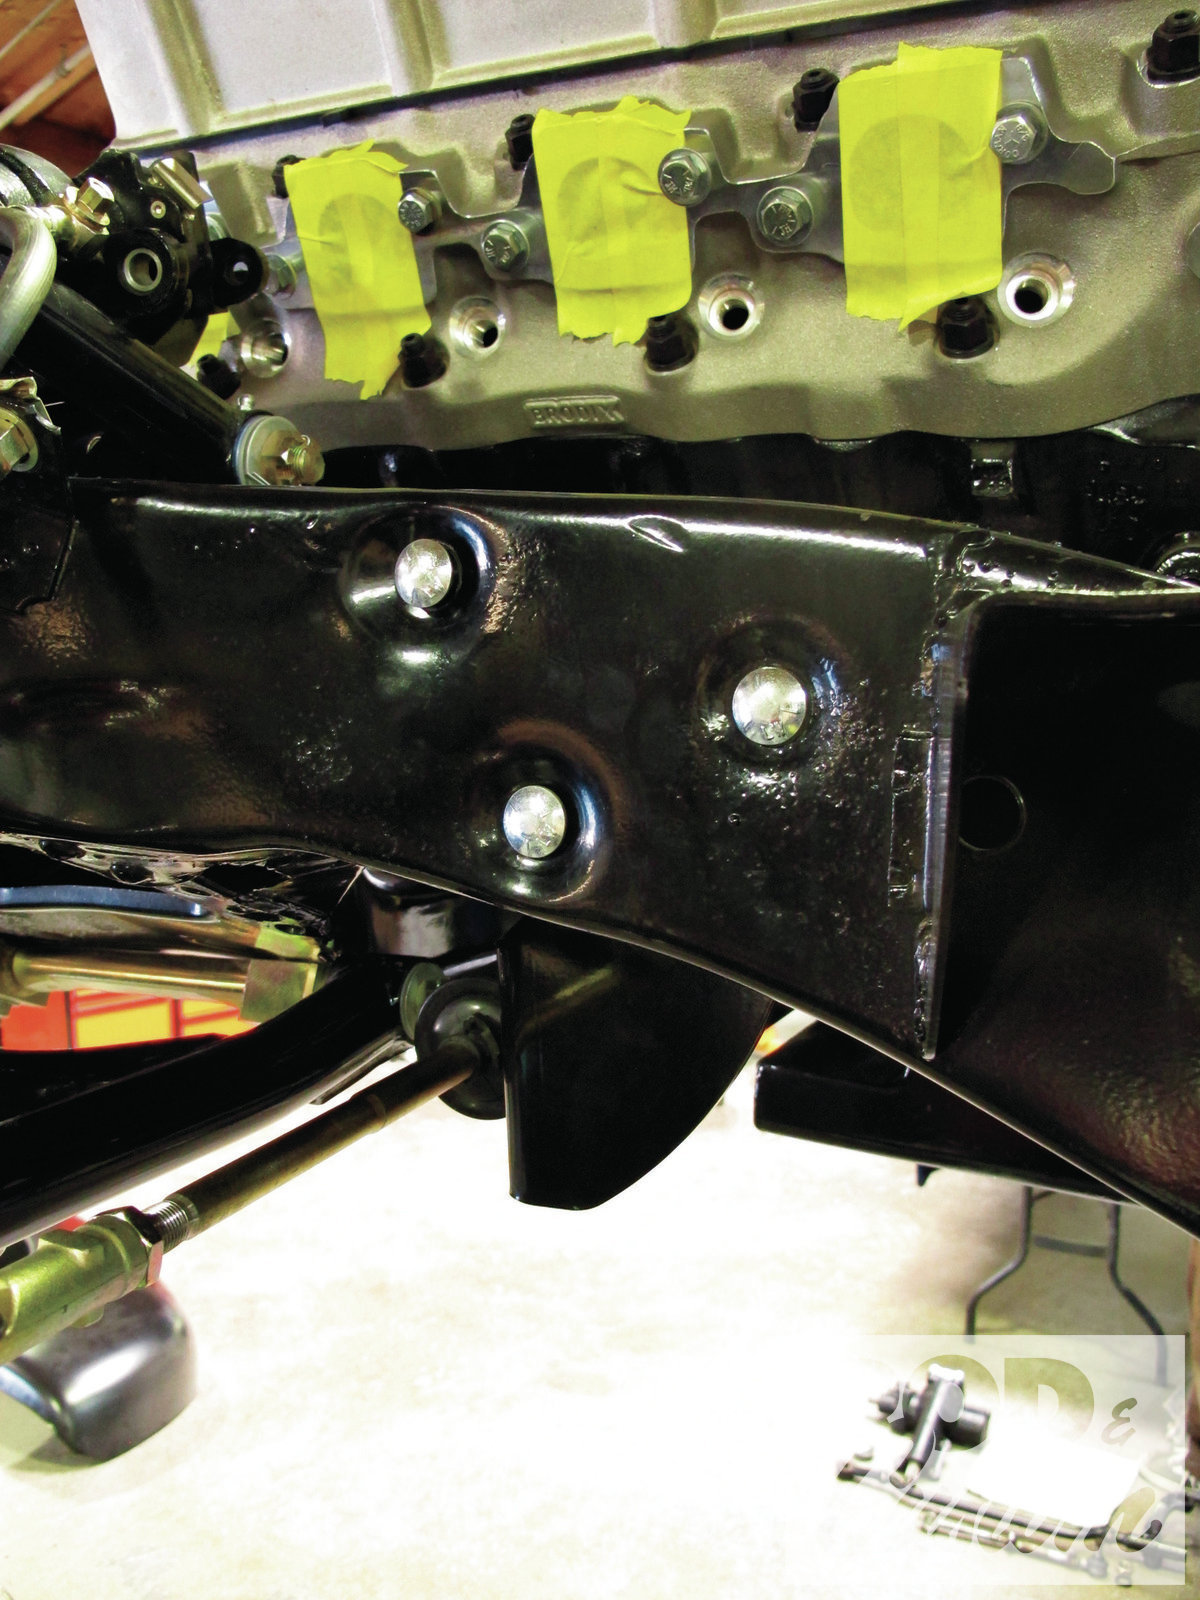 12. The three steering box holes are used to mount the bracket on the driver side.